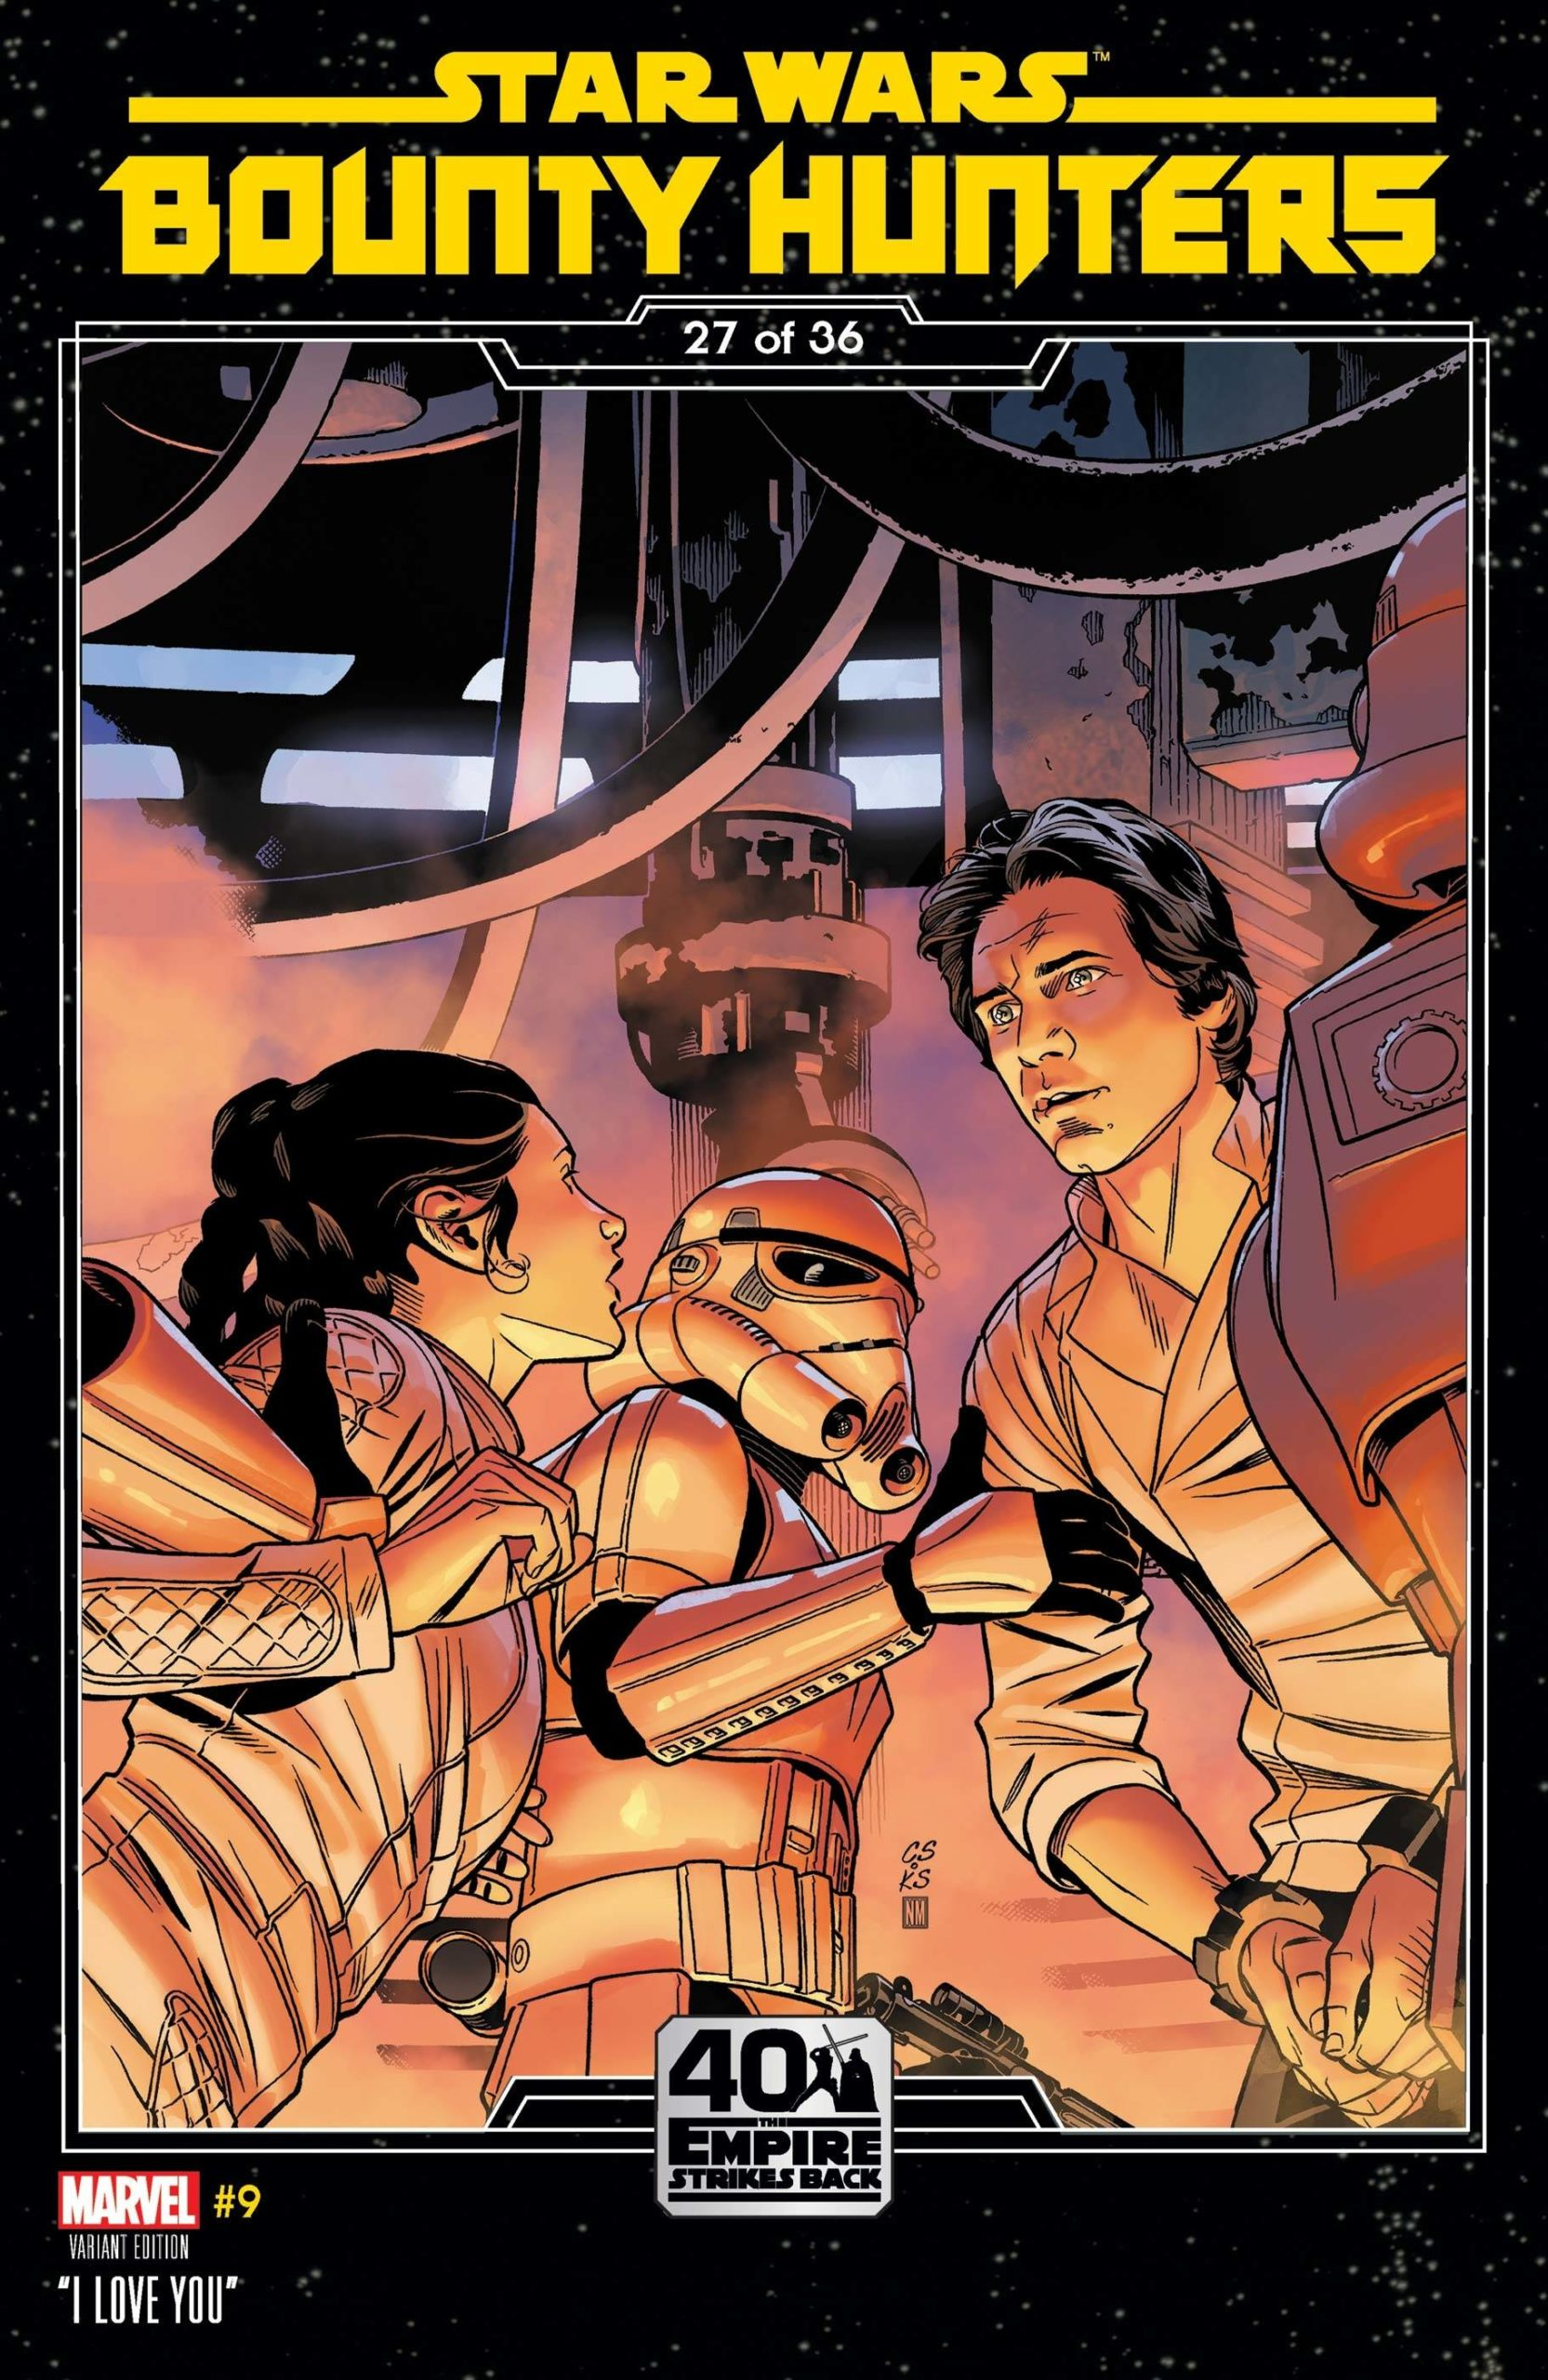 Bounty Hunters #9 (Chris Sprouse The Empire Strikes Back Variant Cover 27 of 36) (27.01.2021)